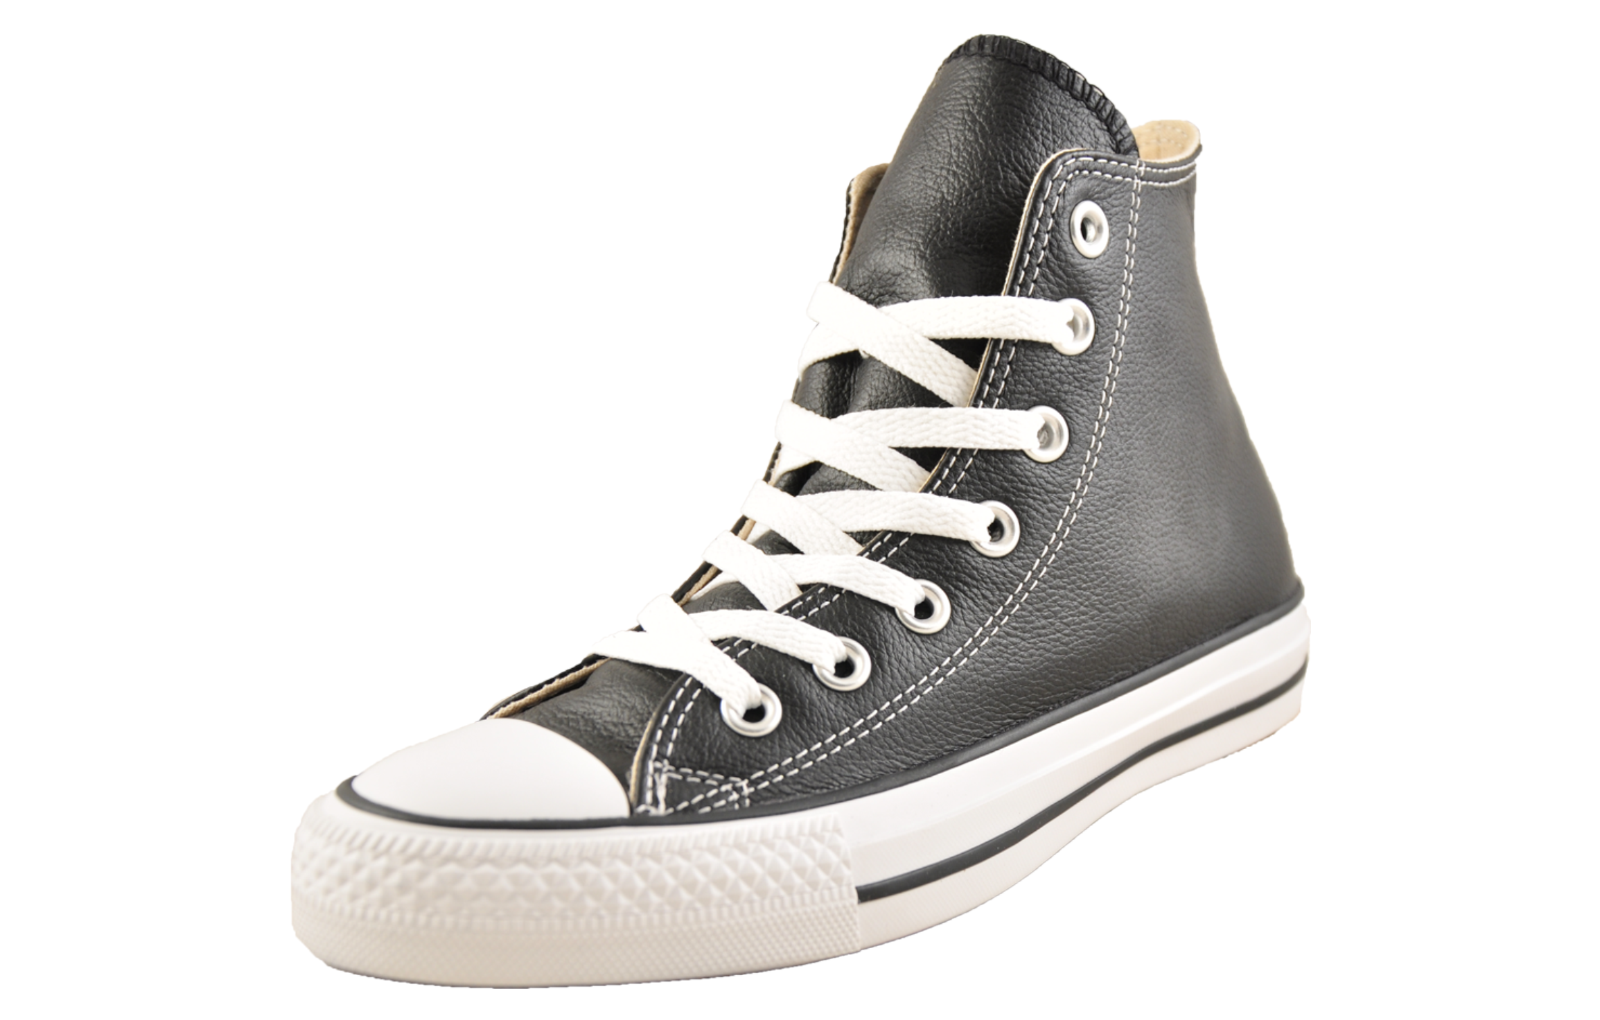 Converse CT All Star Hi Leather Uni  - CN183913